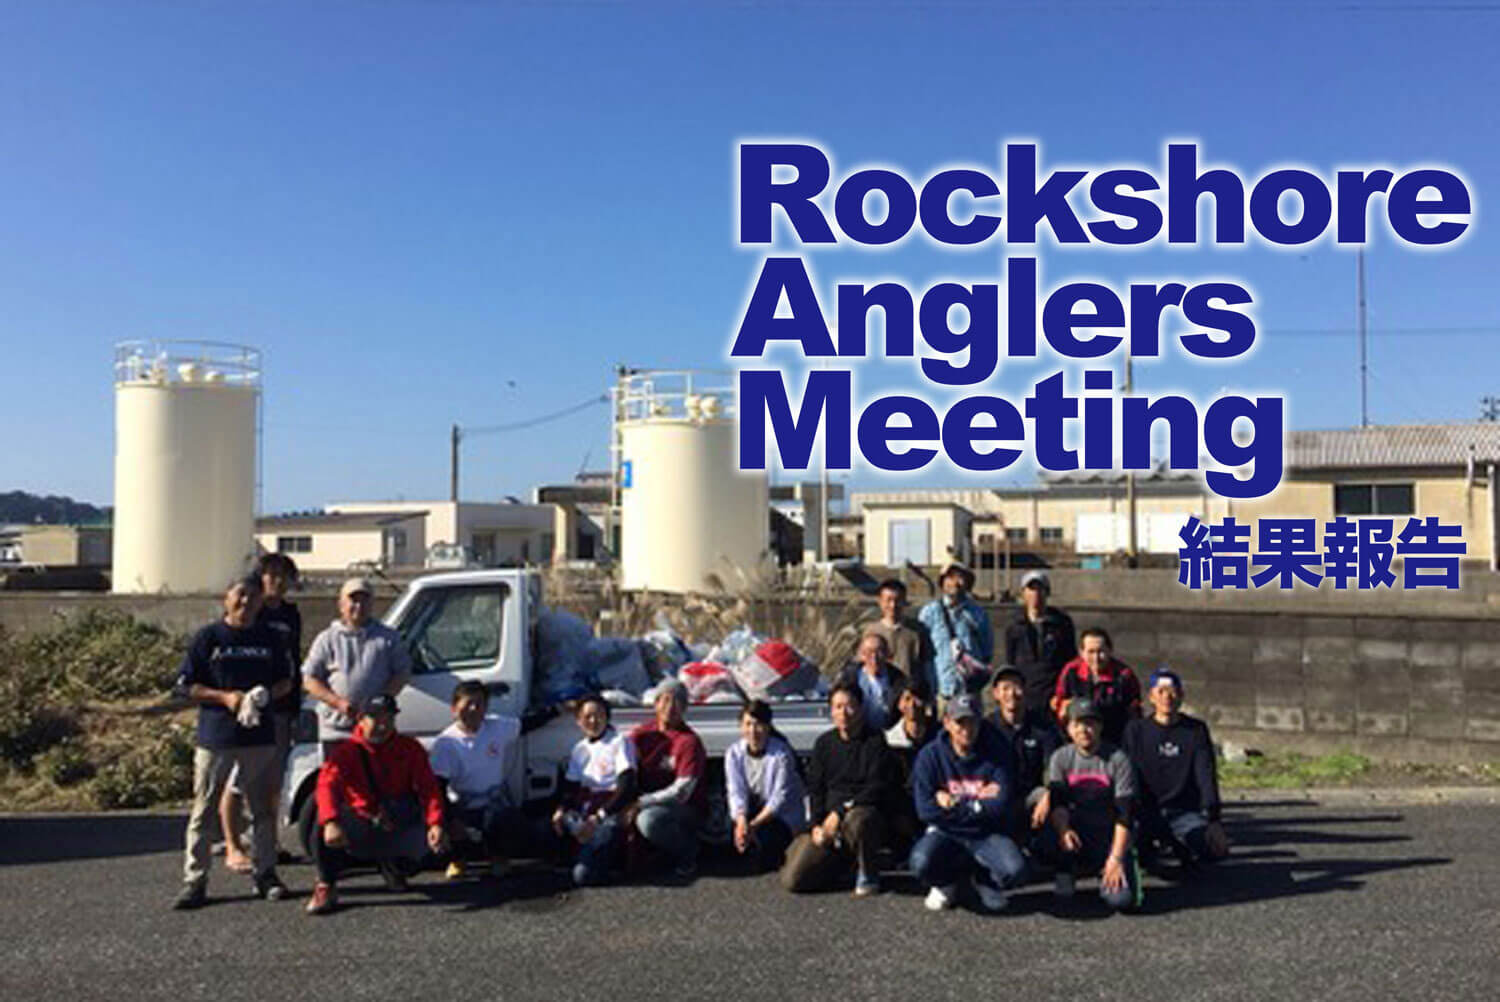 ルアー釣りイベント Rockshore Anglers Meeting1